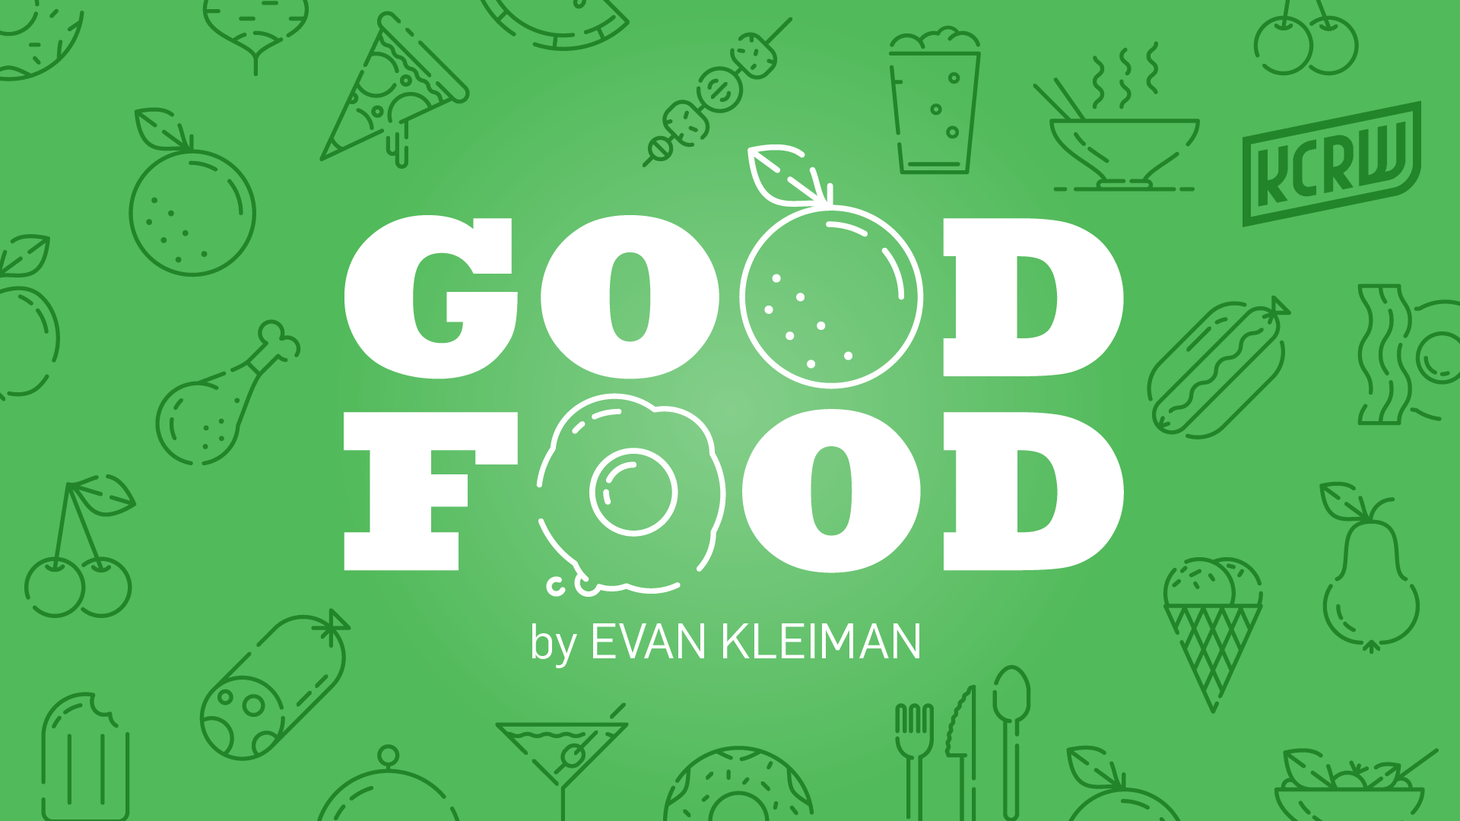 Before you put that meat on the grill for the 4th of July, you should know what's in it. Find out when Evan Kleiman talks to a meat buyer about organic and naturally raised meats. We also get barbecuing tips from the former chef of Maple Drive restaurant. Leonard Schwartz, who quit on his quest for the perfect brisket, pulled pork and ribs. It's a meal to entertain with, from the man who knows how to cook everything, and some soul food sweets from long-time cookbook author and cook Joyce White.